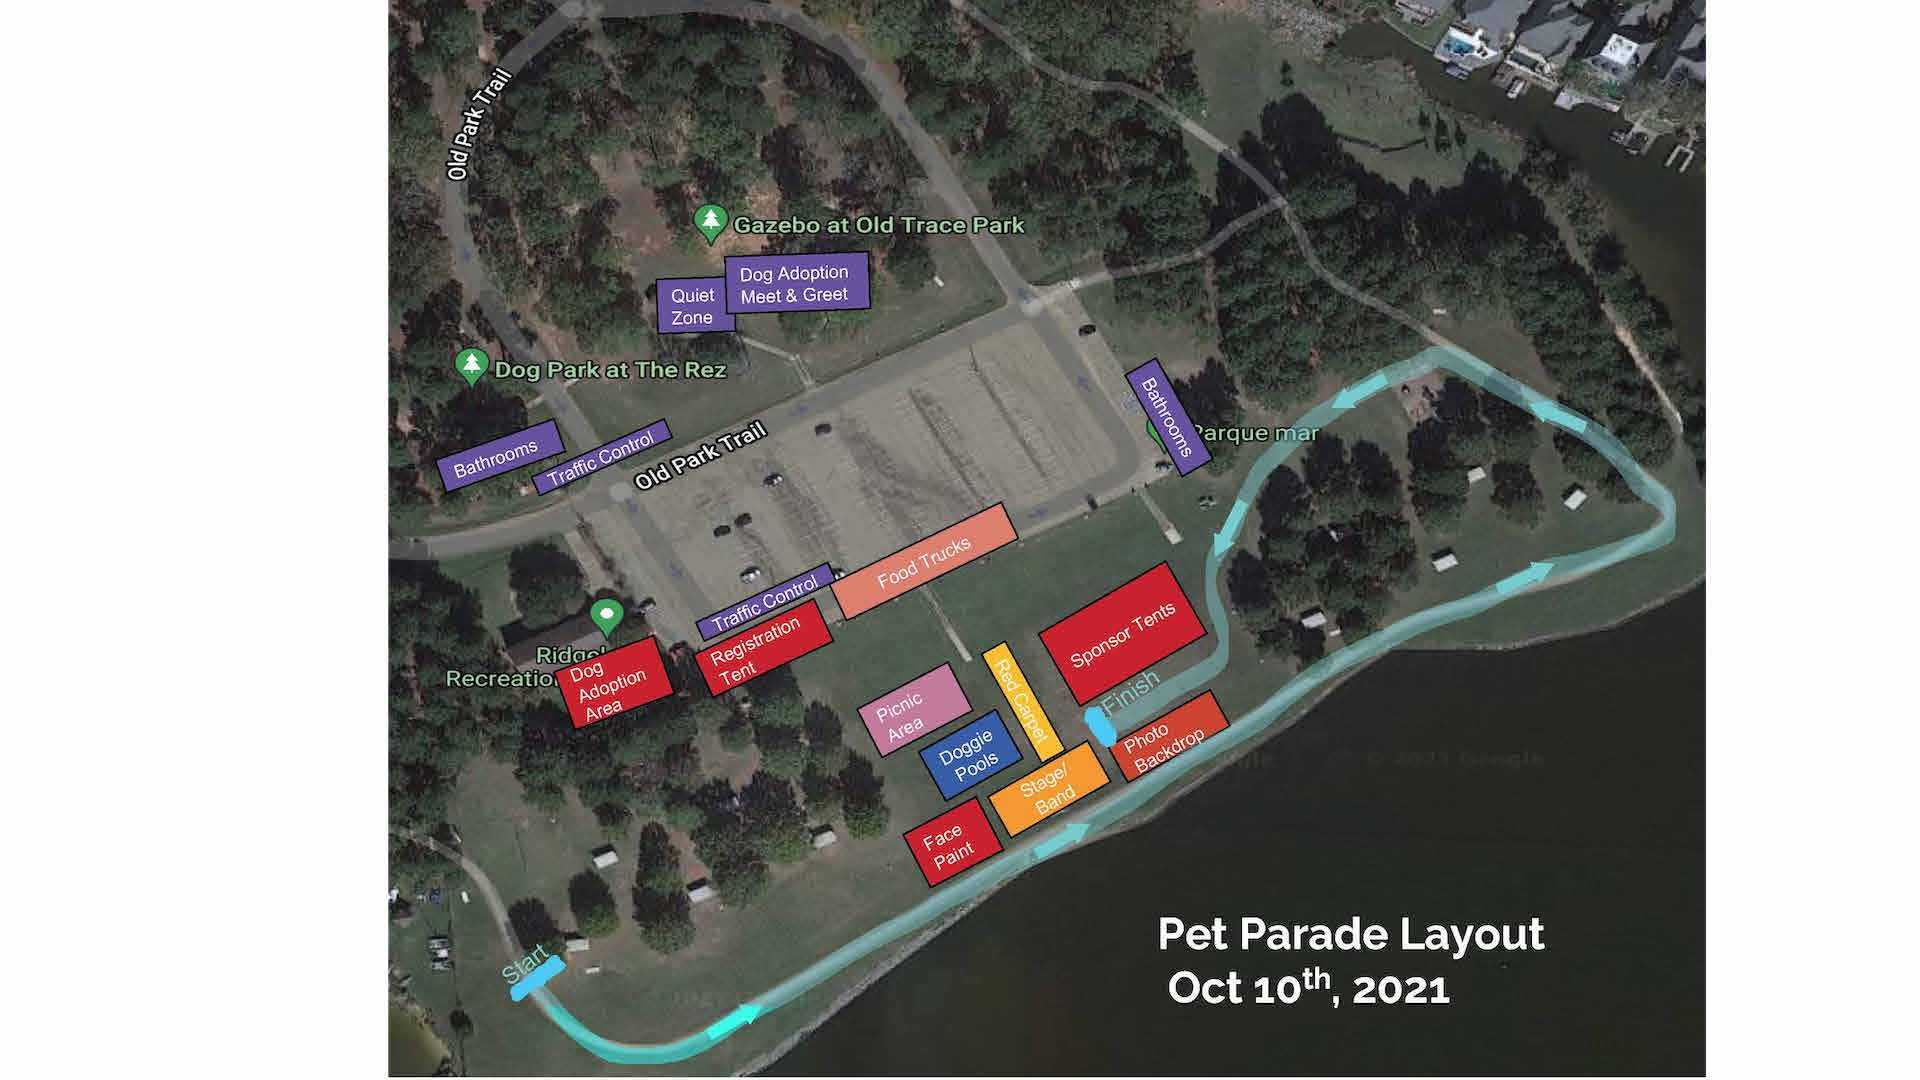 Site Layout and Parade Route